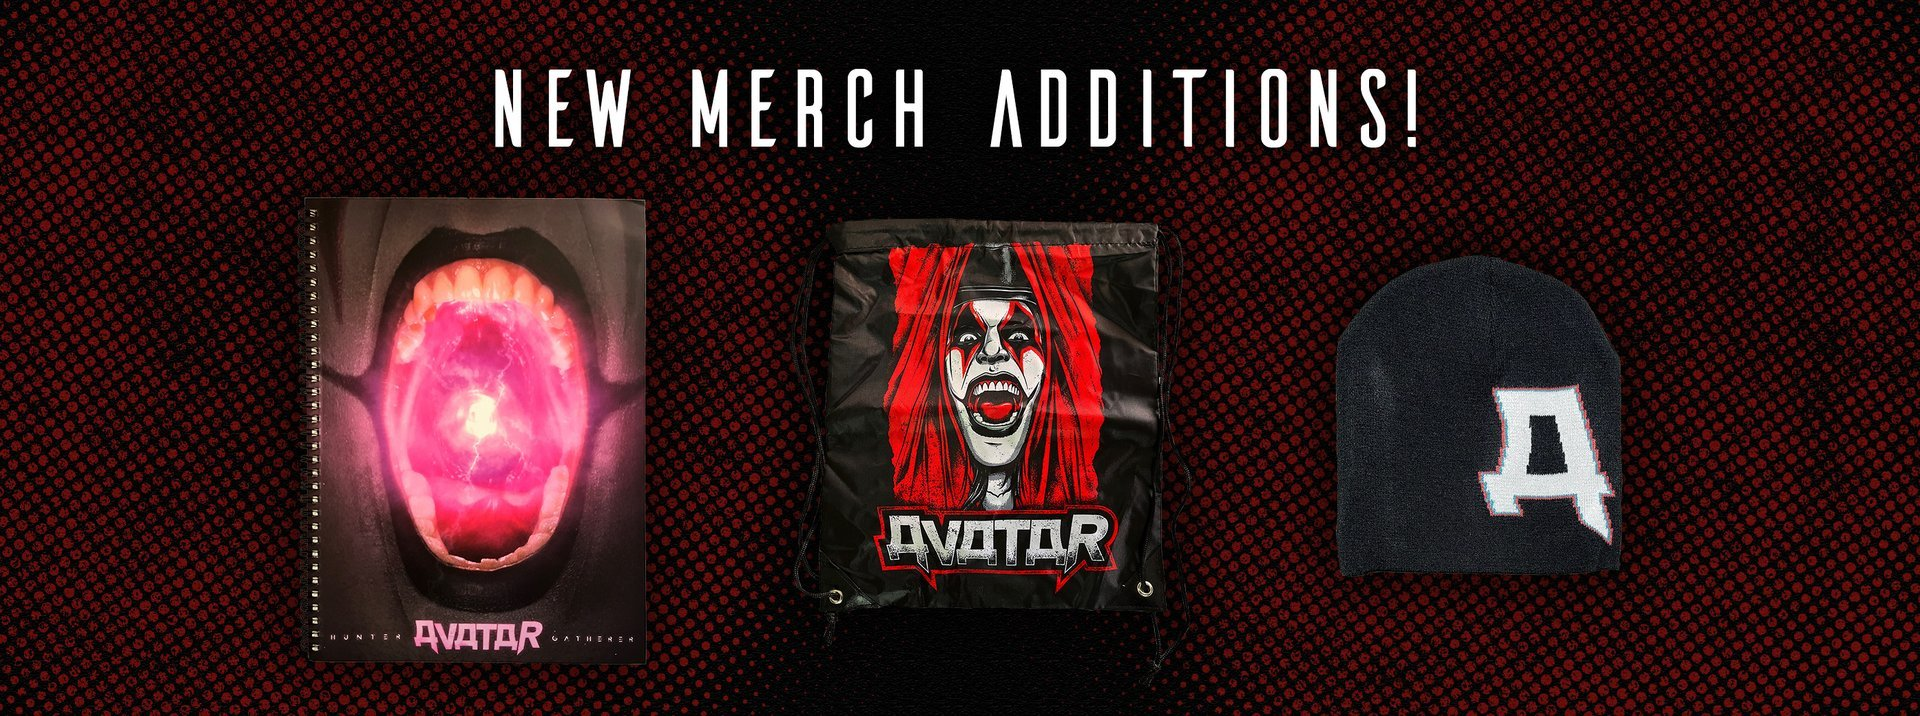 Limited Edition Black Waltz Jigsaw Puzzles!